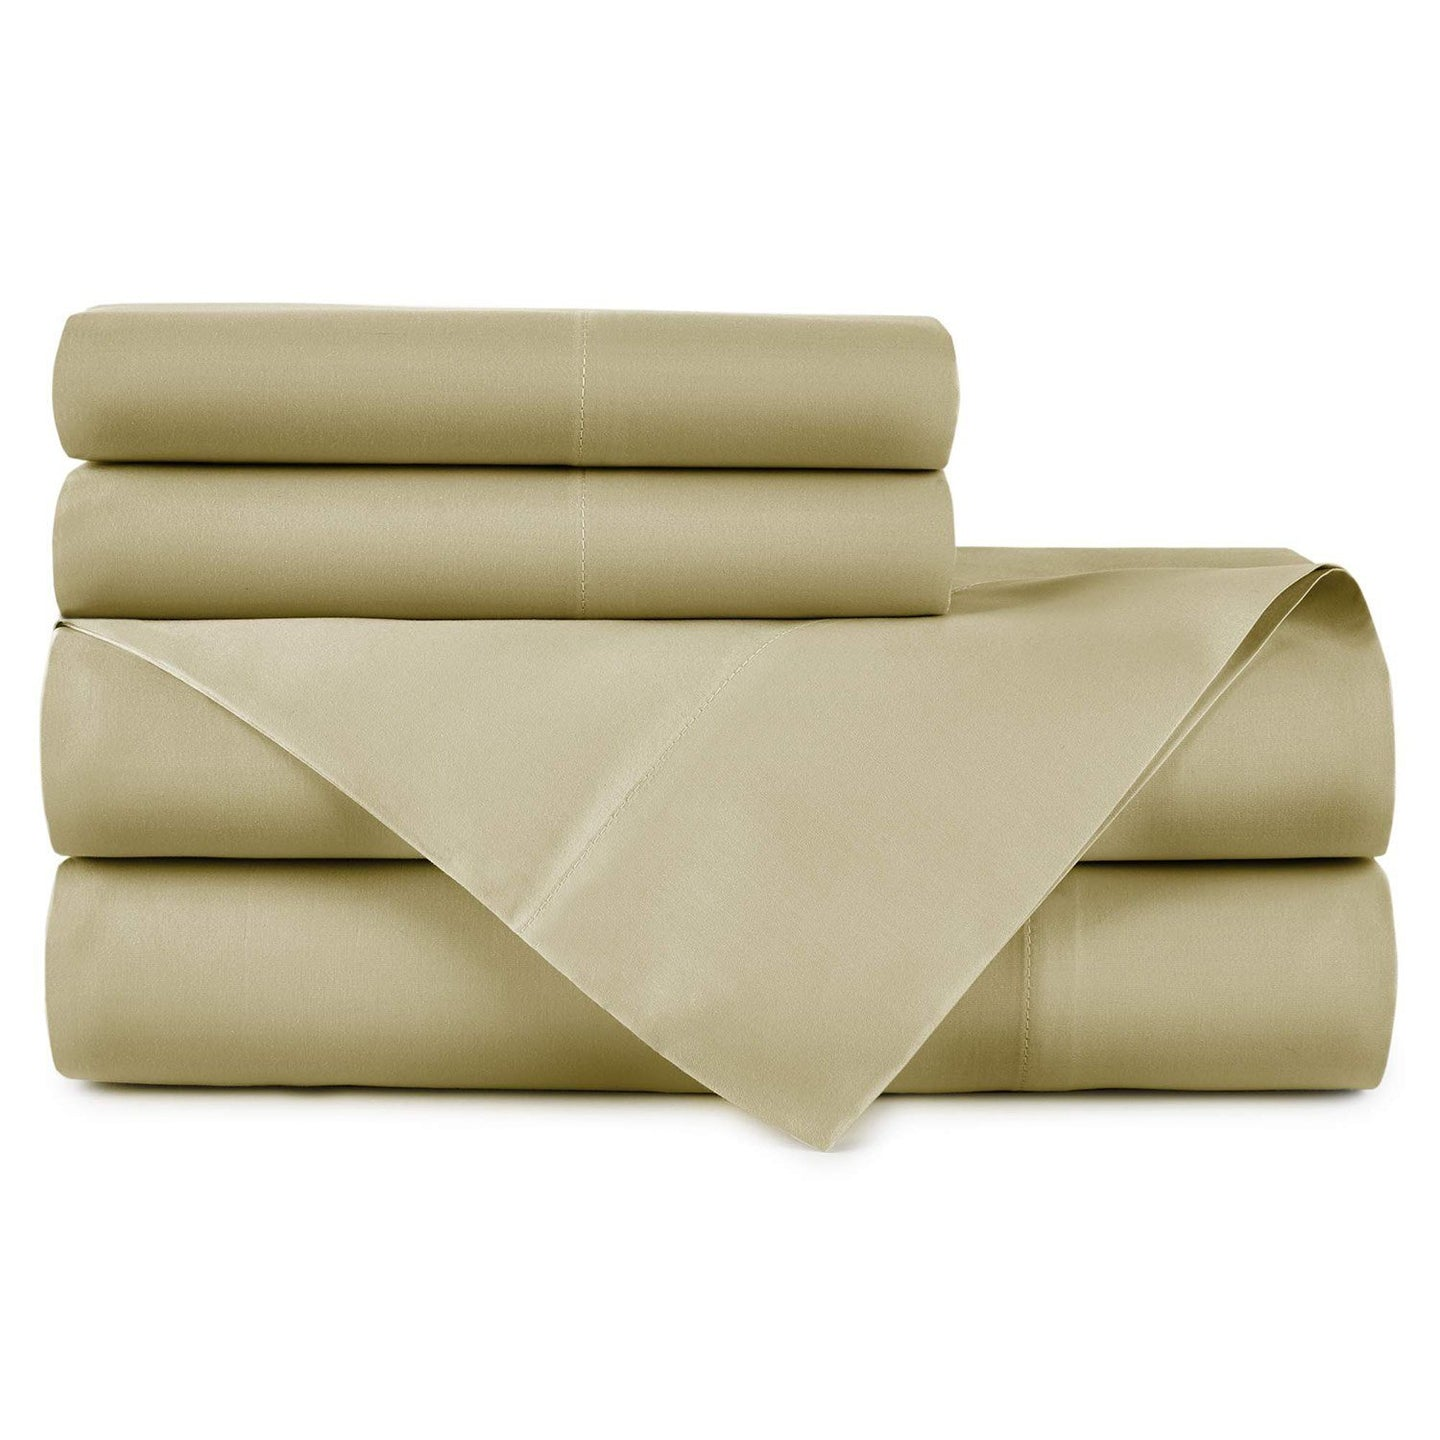 Emily Egyptian cotton sheet set in Mushroom